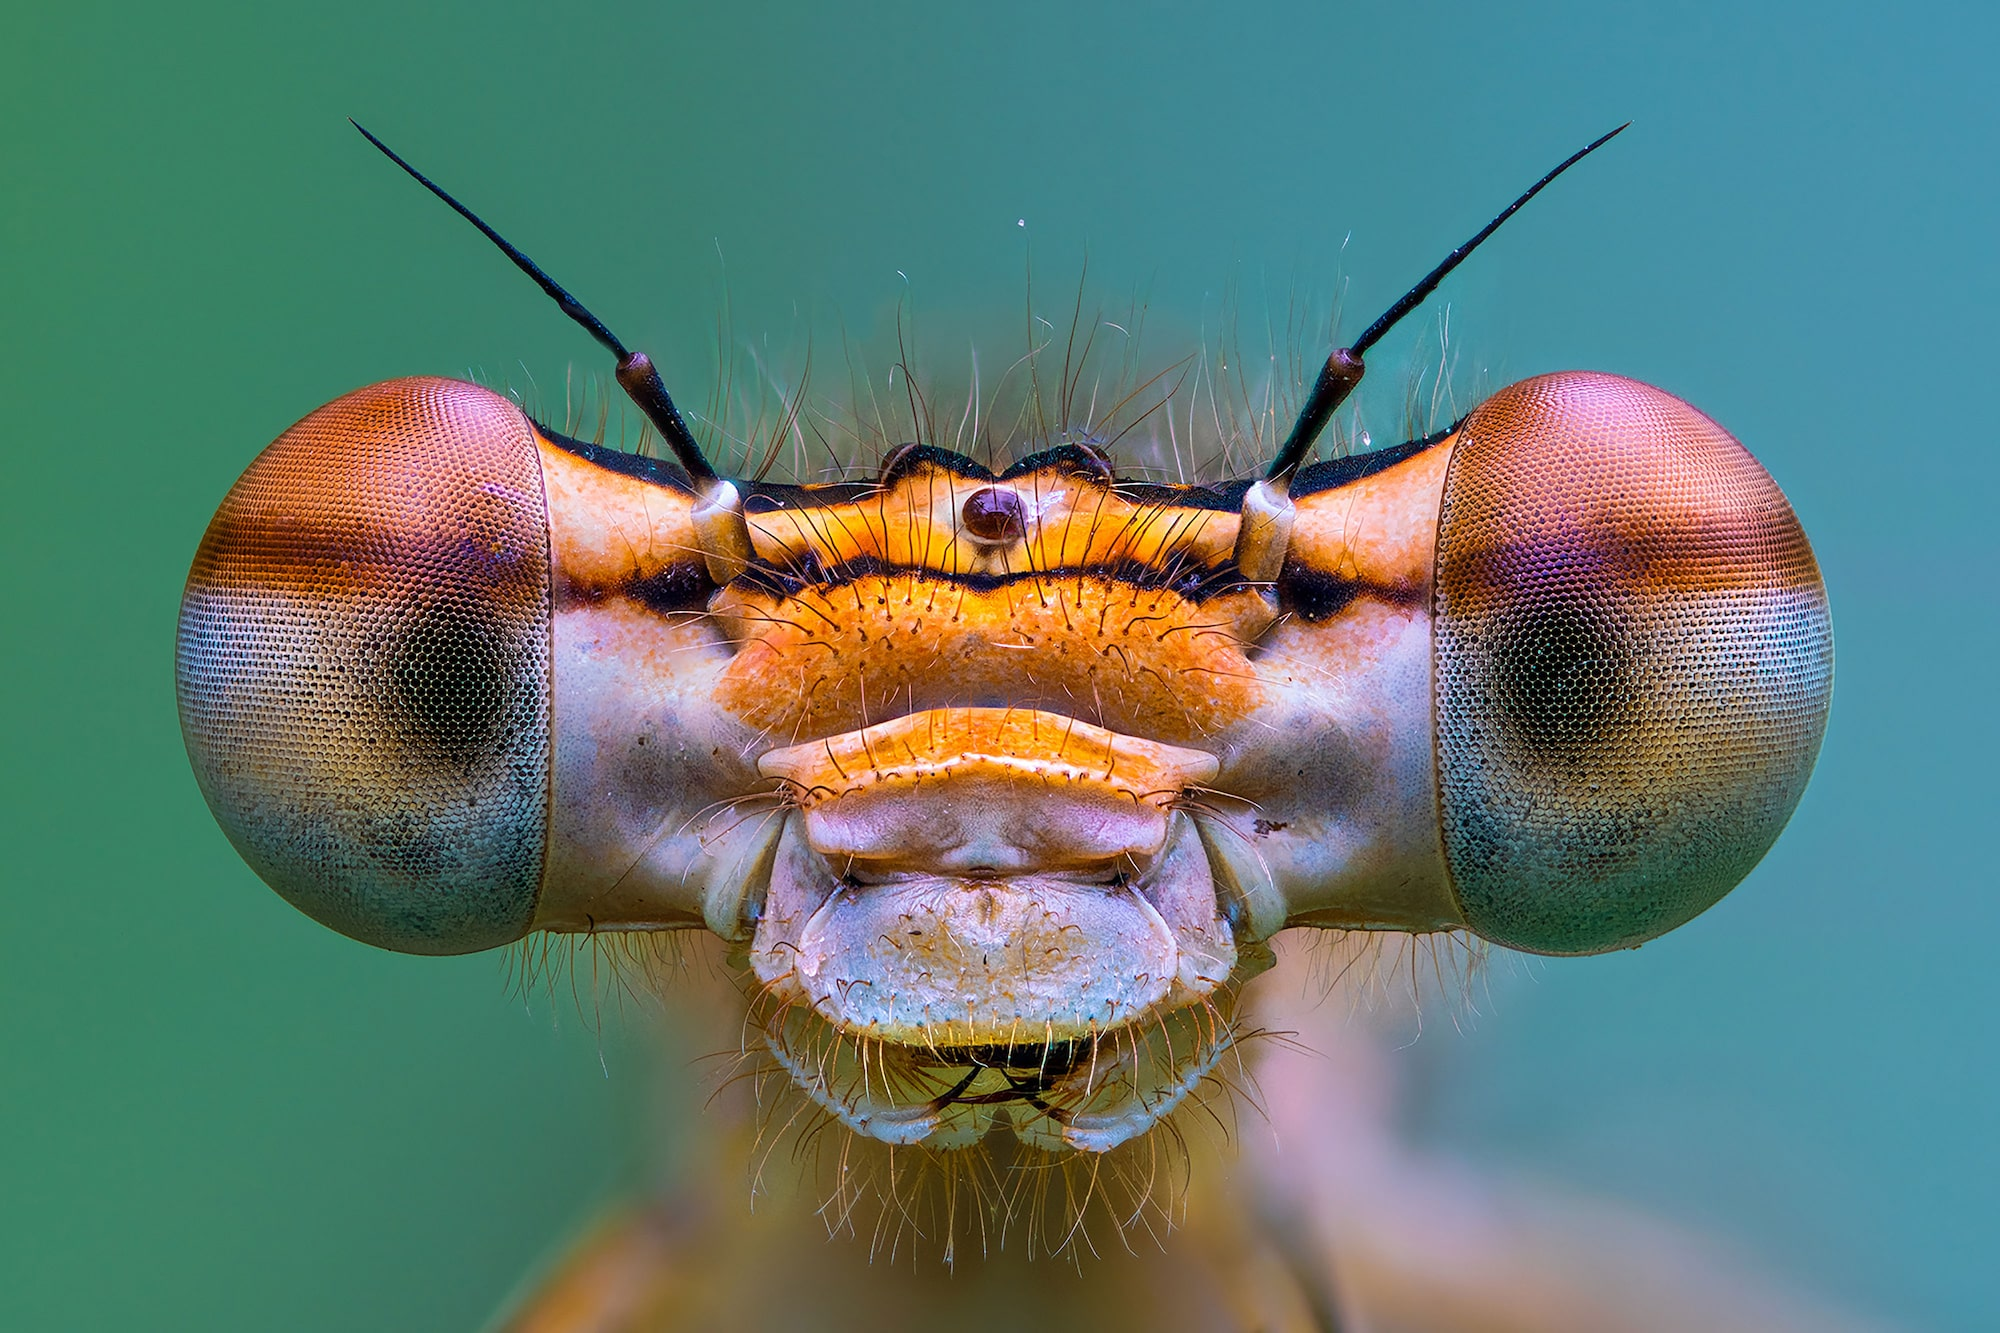 petar sabol sony alpha 7RIII extreme close up of an insect face